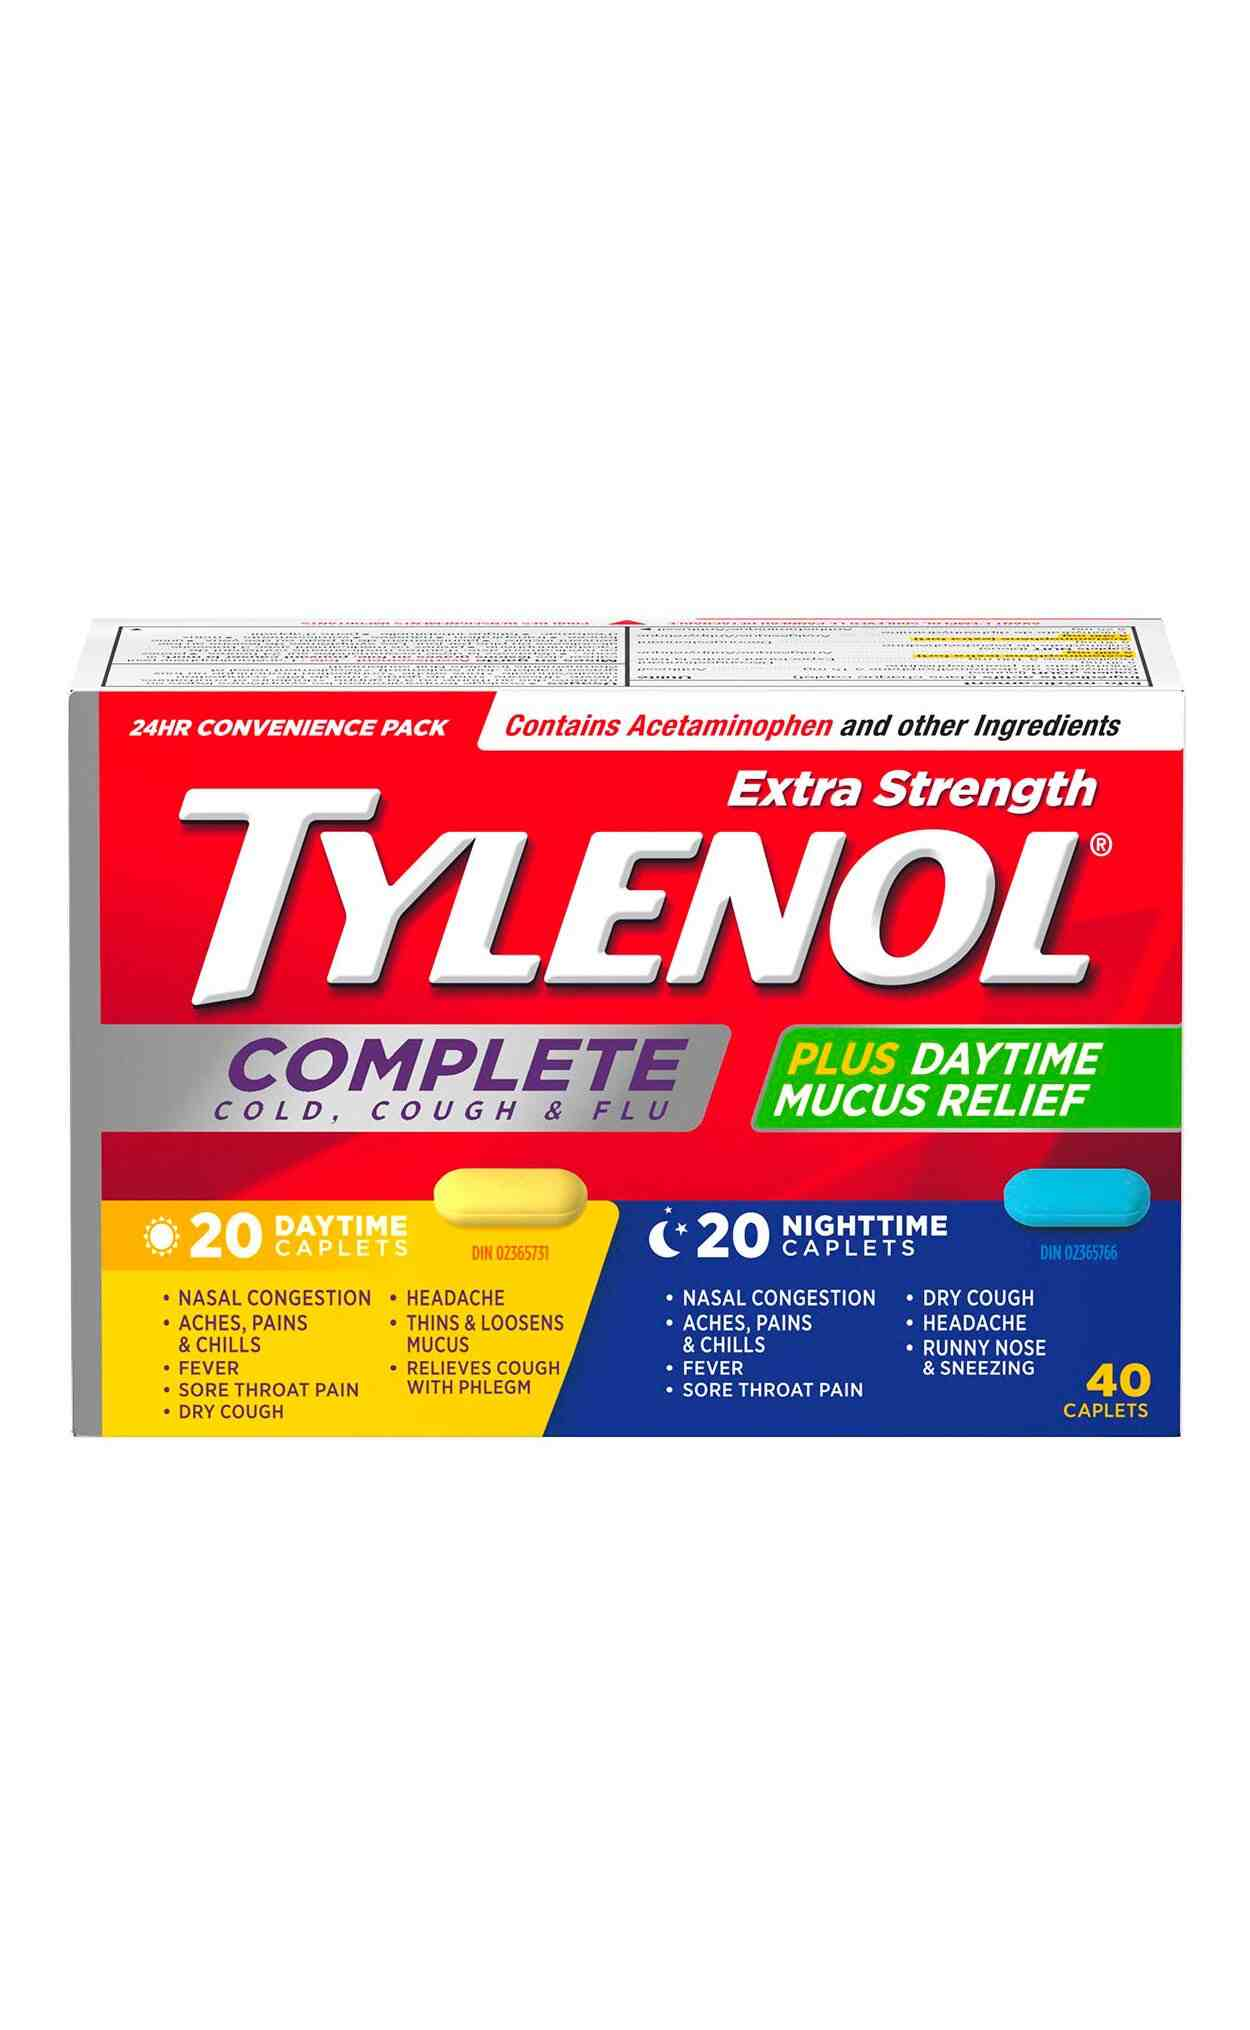 Extra Strength TYLENOL® Complete Cold, Cough & Flu Daytime & Nighttime, 40 tablets